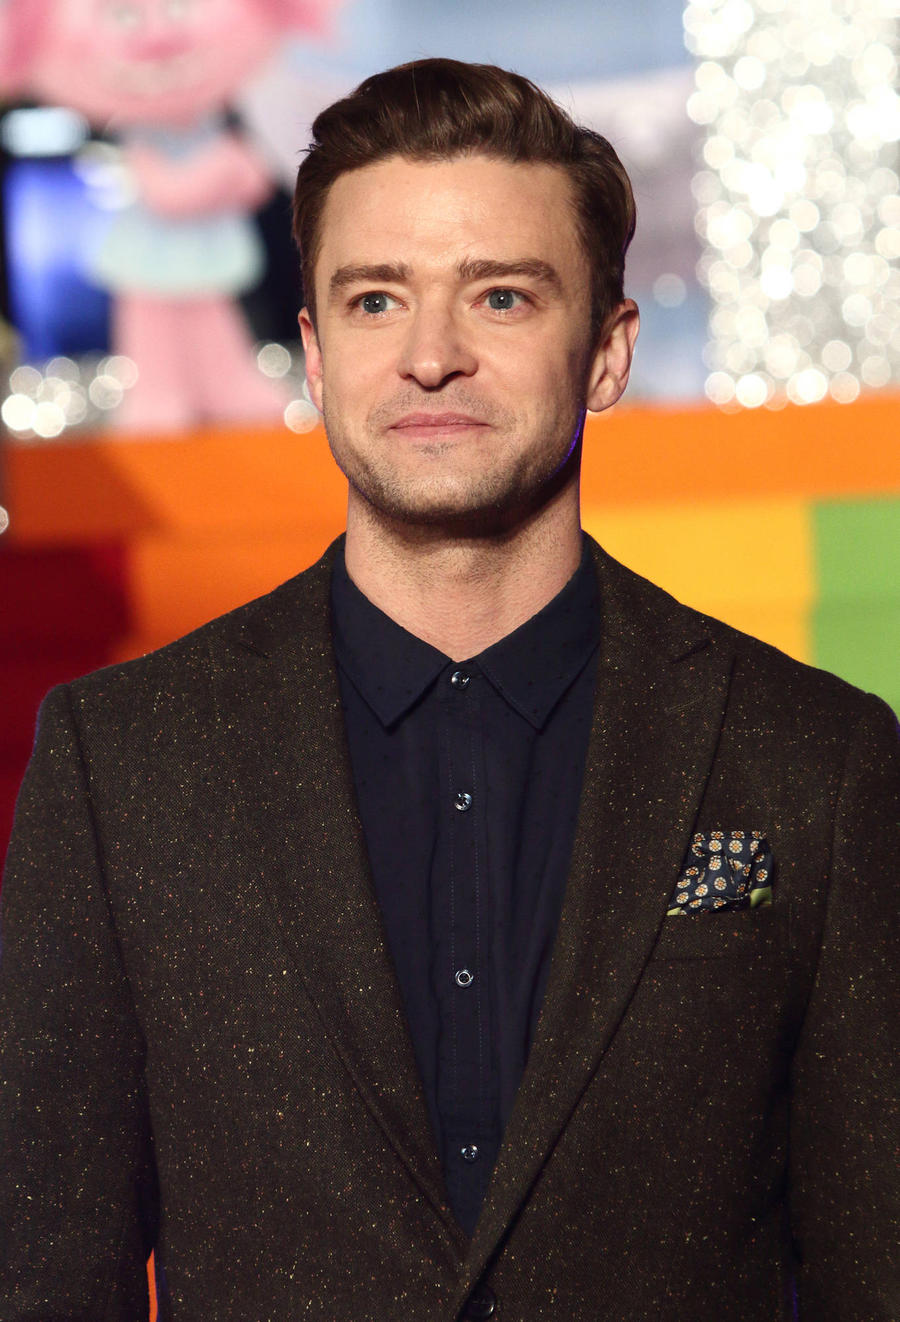 Justin Timberlake Treats Twitter Fans To Free Pizza